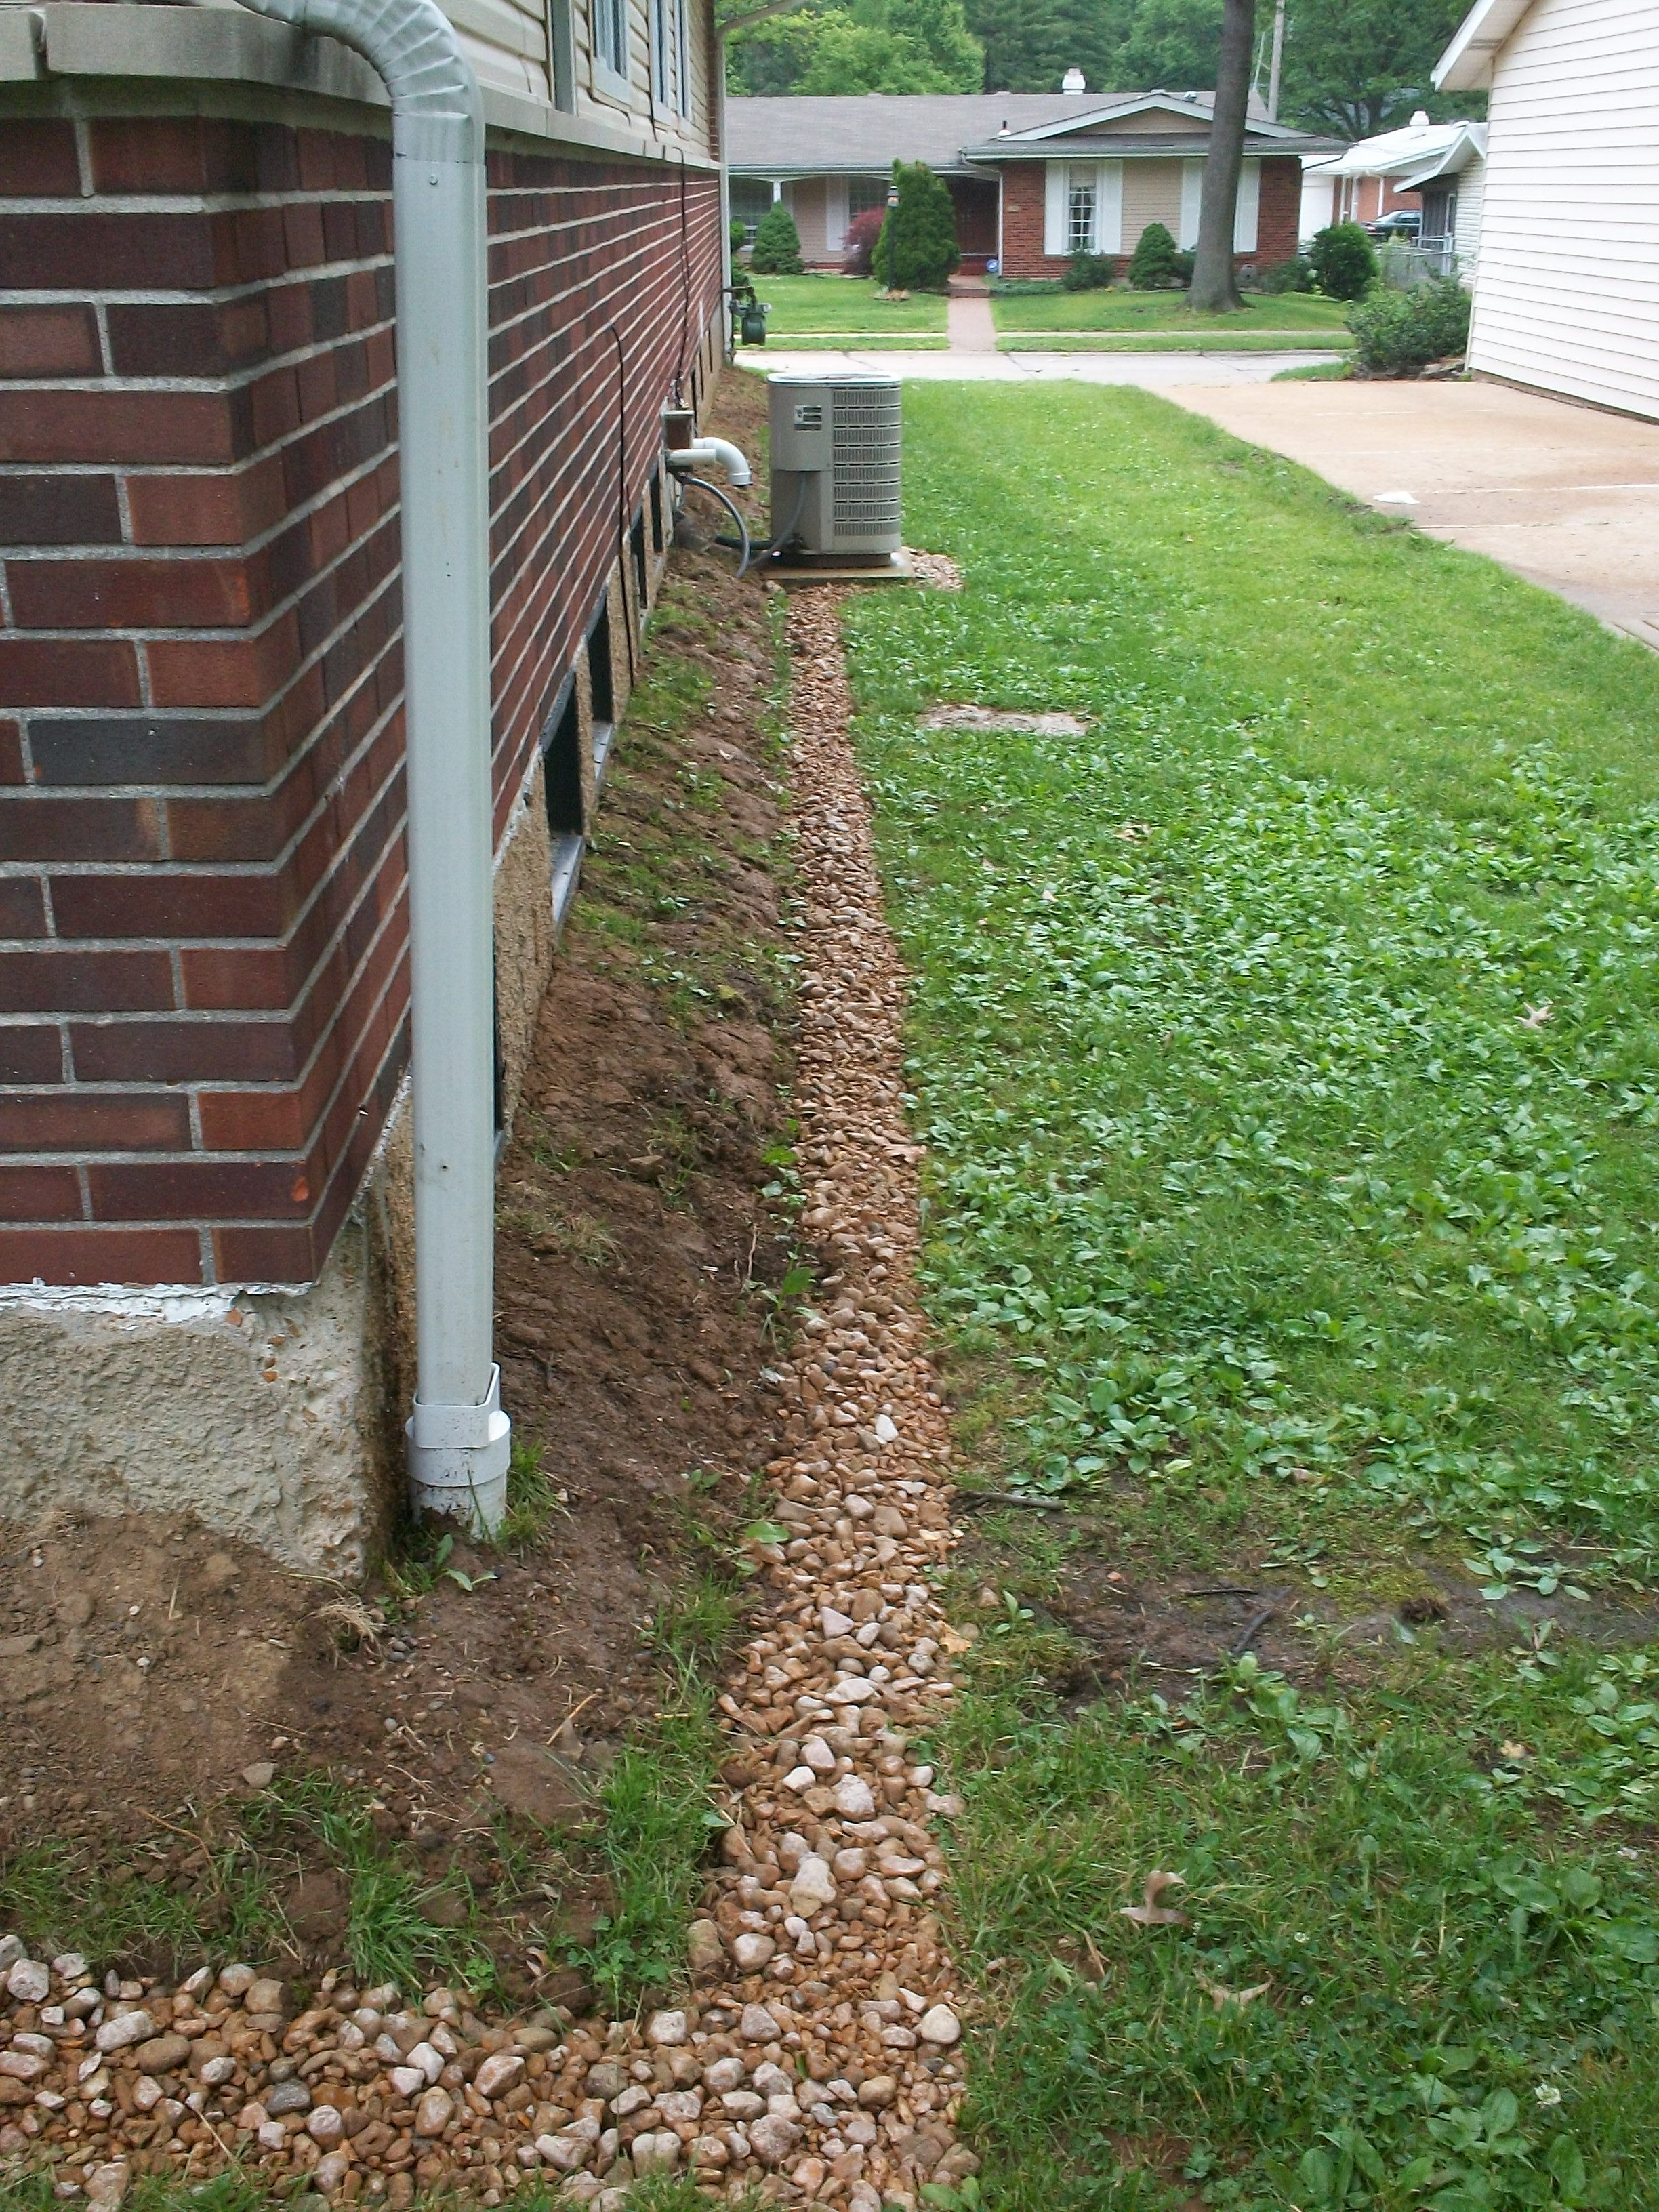 French drain and downspout extensions divert rainwater for Outdoor ground drains